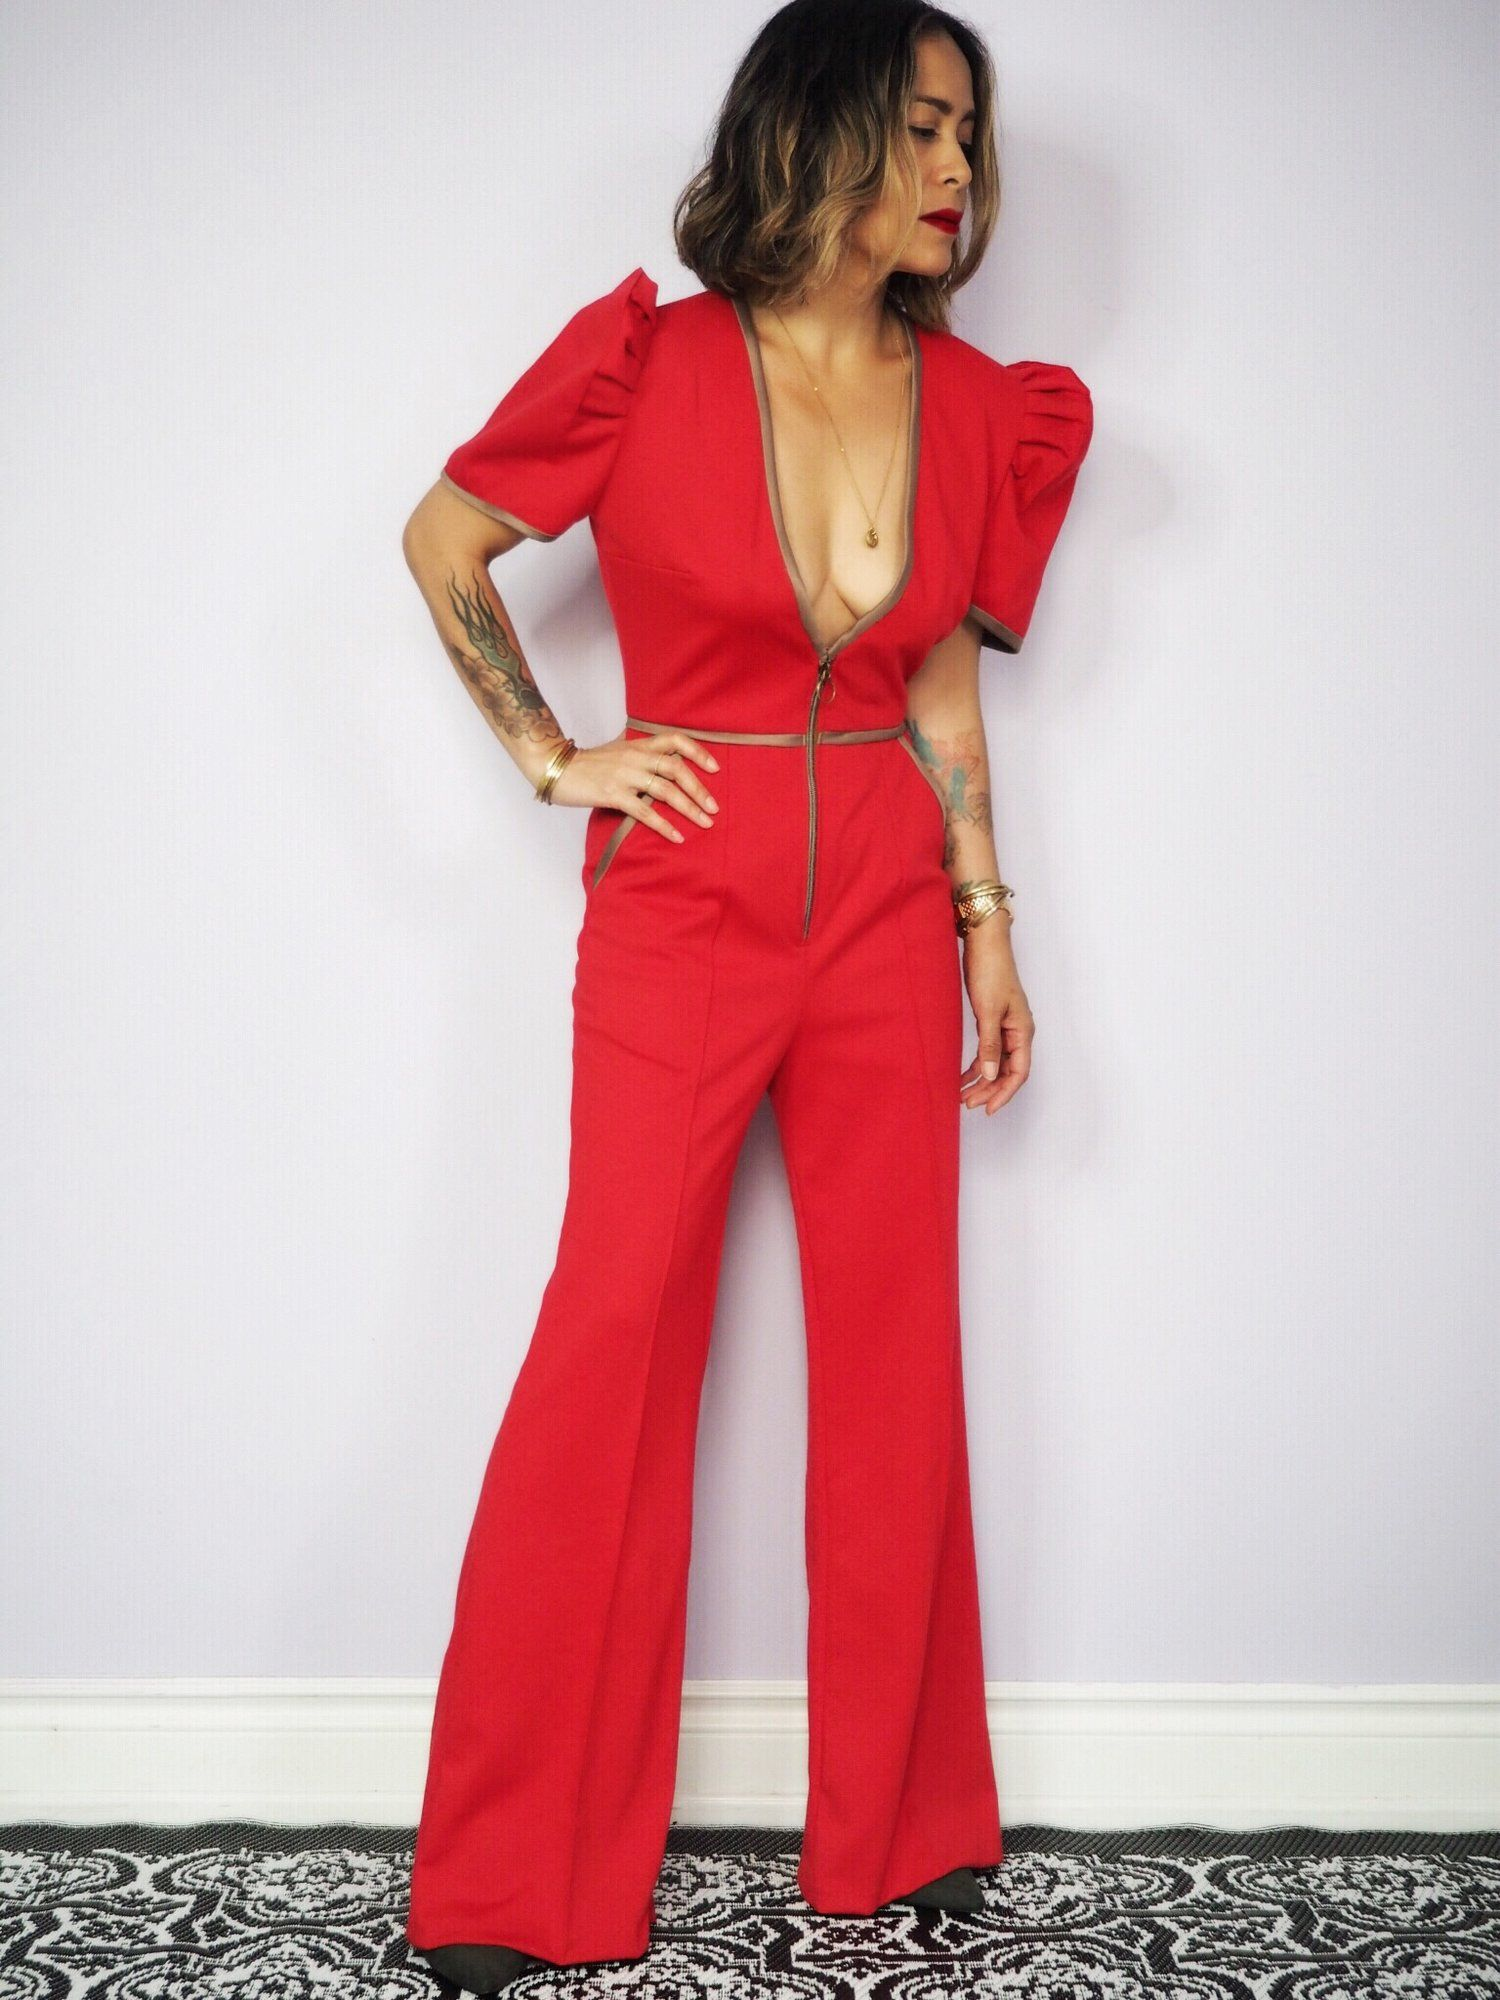 e23a60f815 VINTAGallery  TernoJumpsuit - jumpsuit with butterfly sleeves! V Cuts